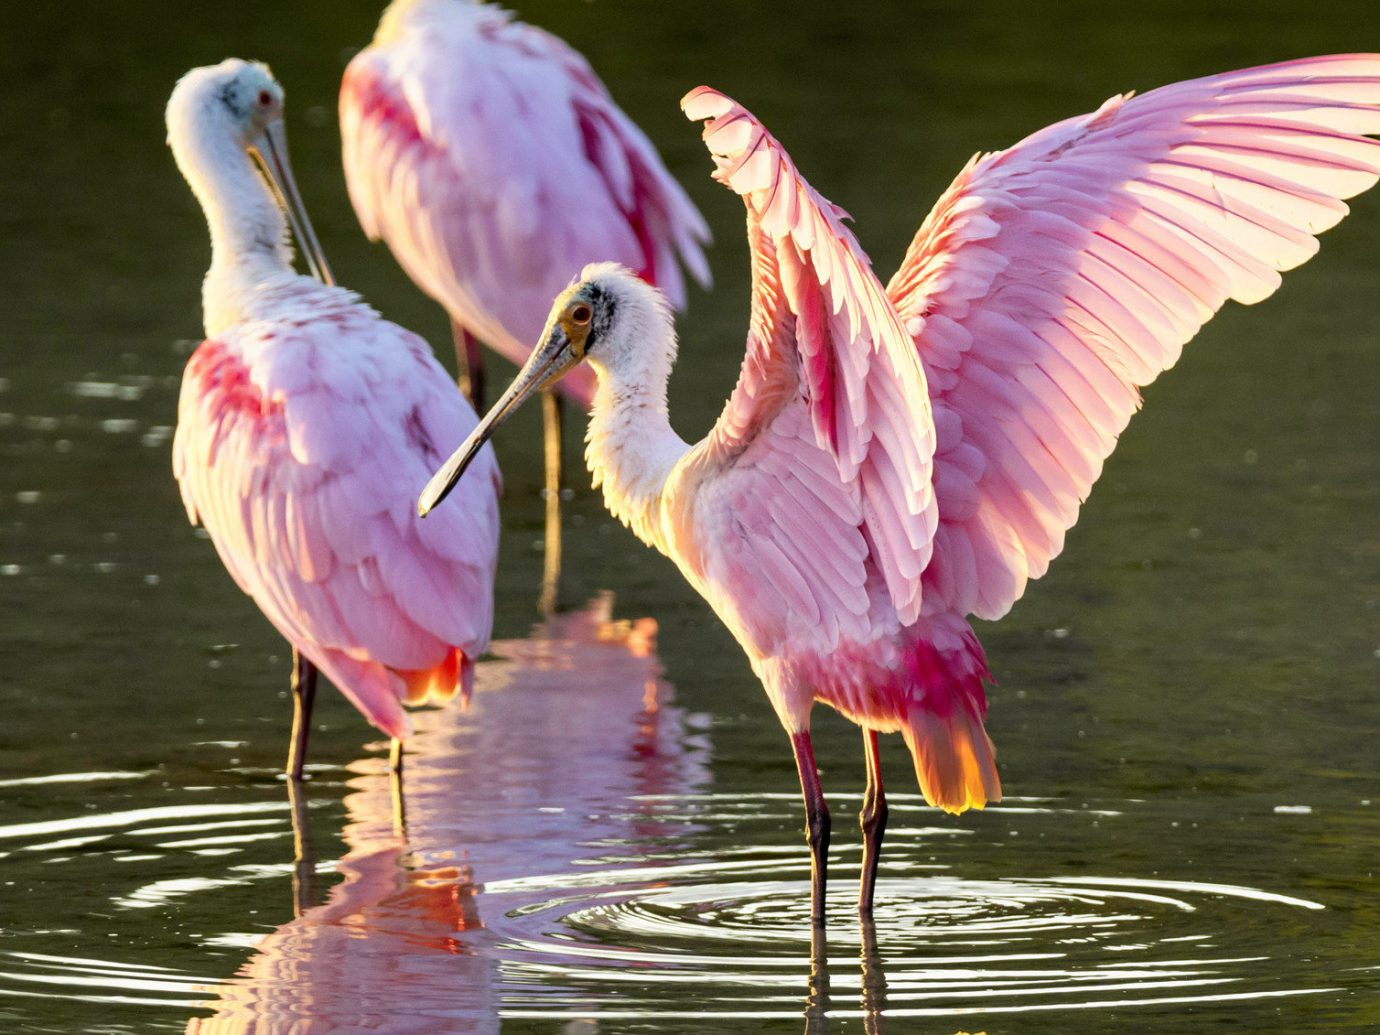 Hotels Secret Getaways Trip Ideas Bird water animal Nature beak vertebrate outdoor fauna flamingo spoonbill Wildlife water bird aquatic bird reflection wing flower colored